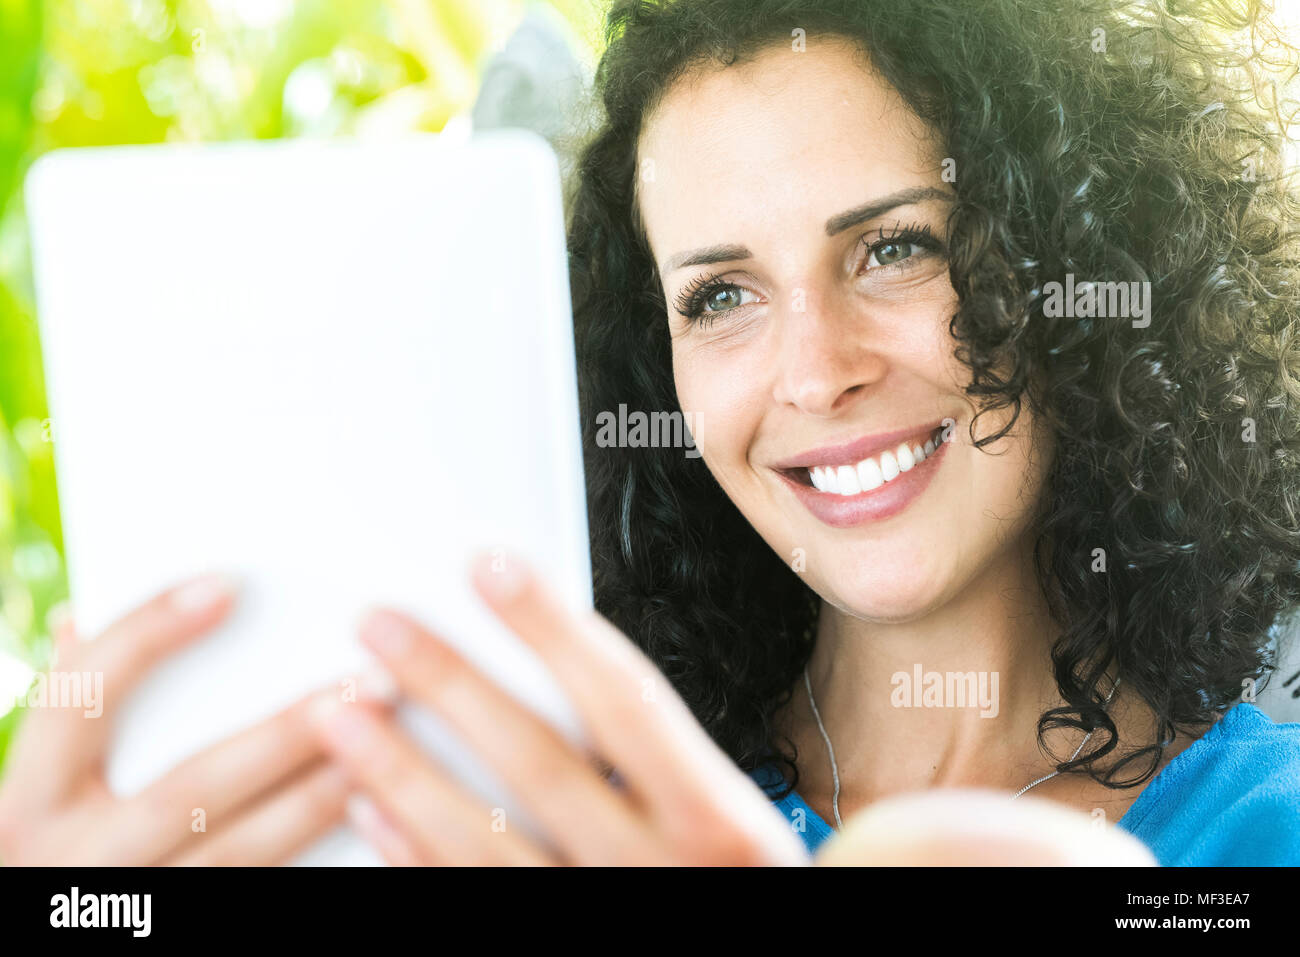 Portrait of smiling woman holding e-reader Photo Stock